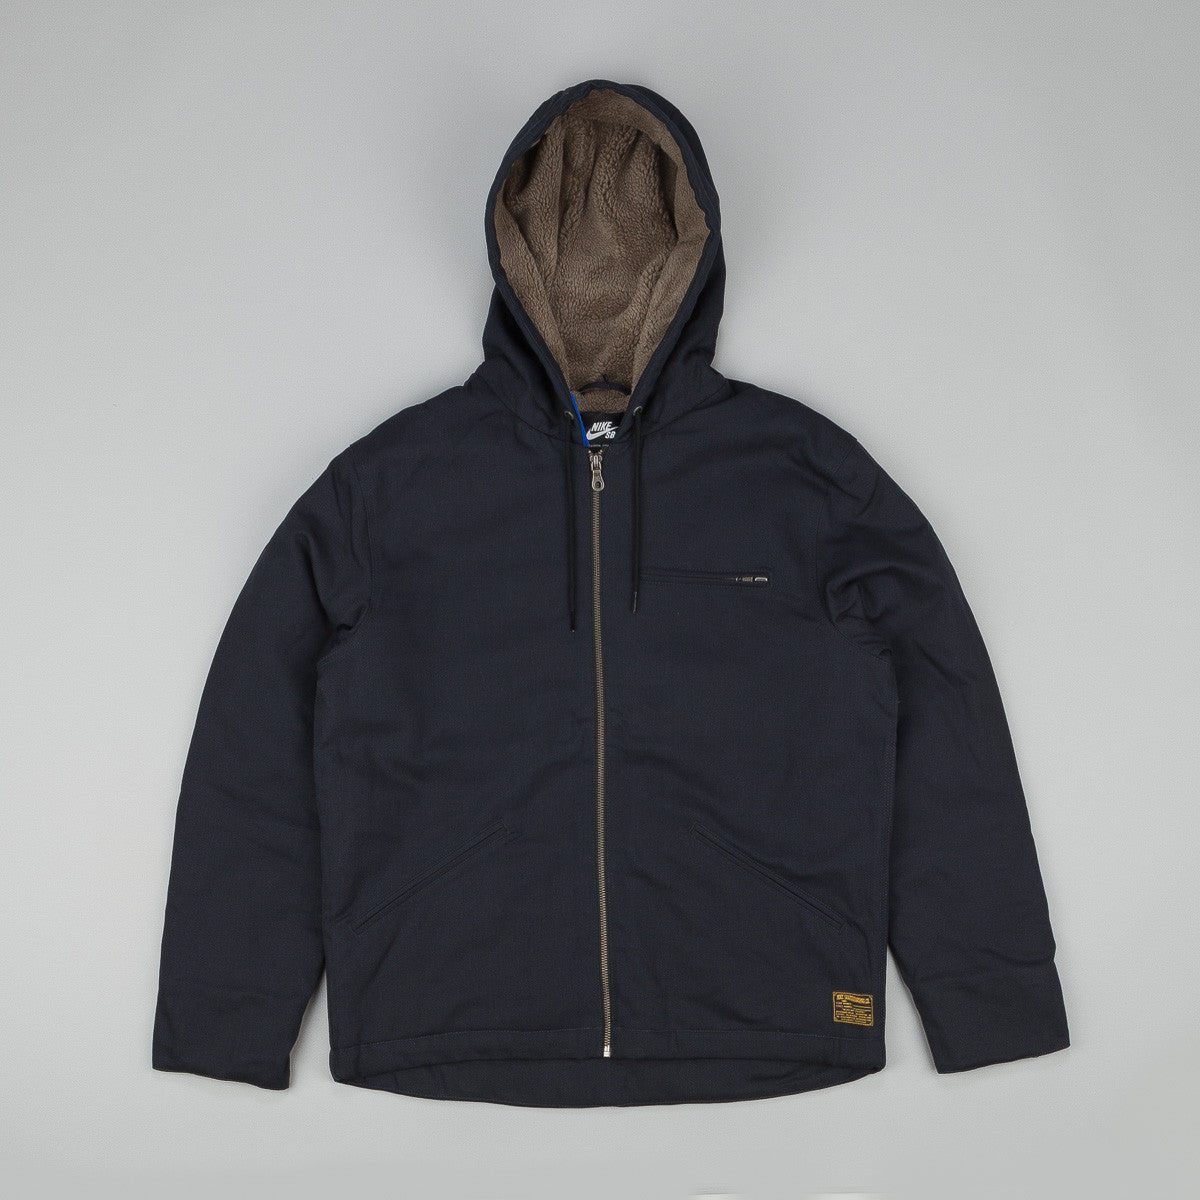 Nike SB Clinton Garage Jacket